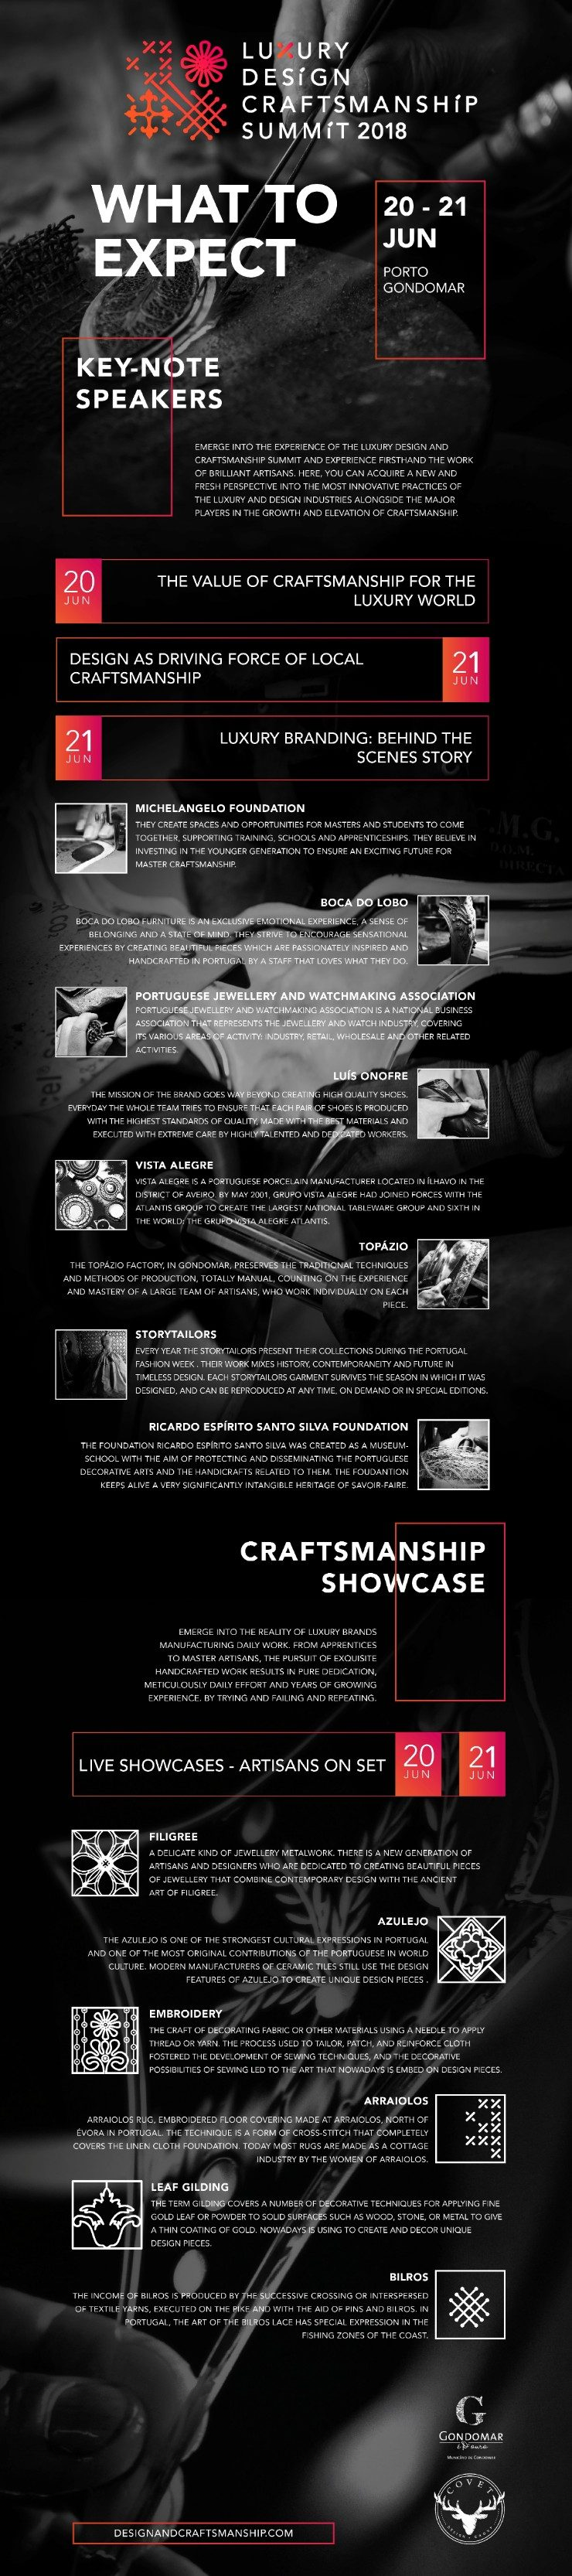 craftsmanship Be Dazzled by The Arts Of The Luxury Design & Craftsmanship Summit summit what to expect 001 740x3331